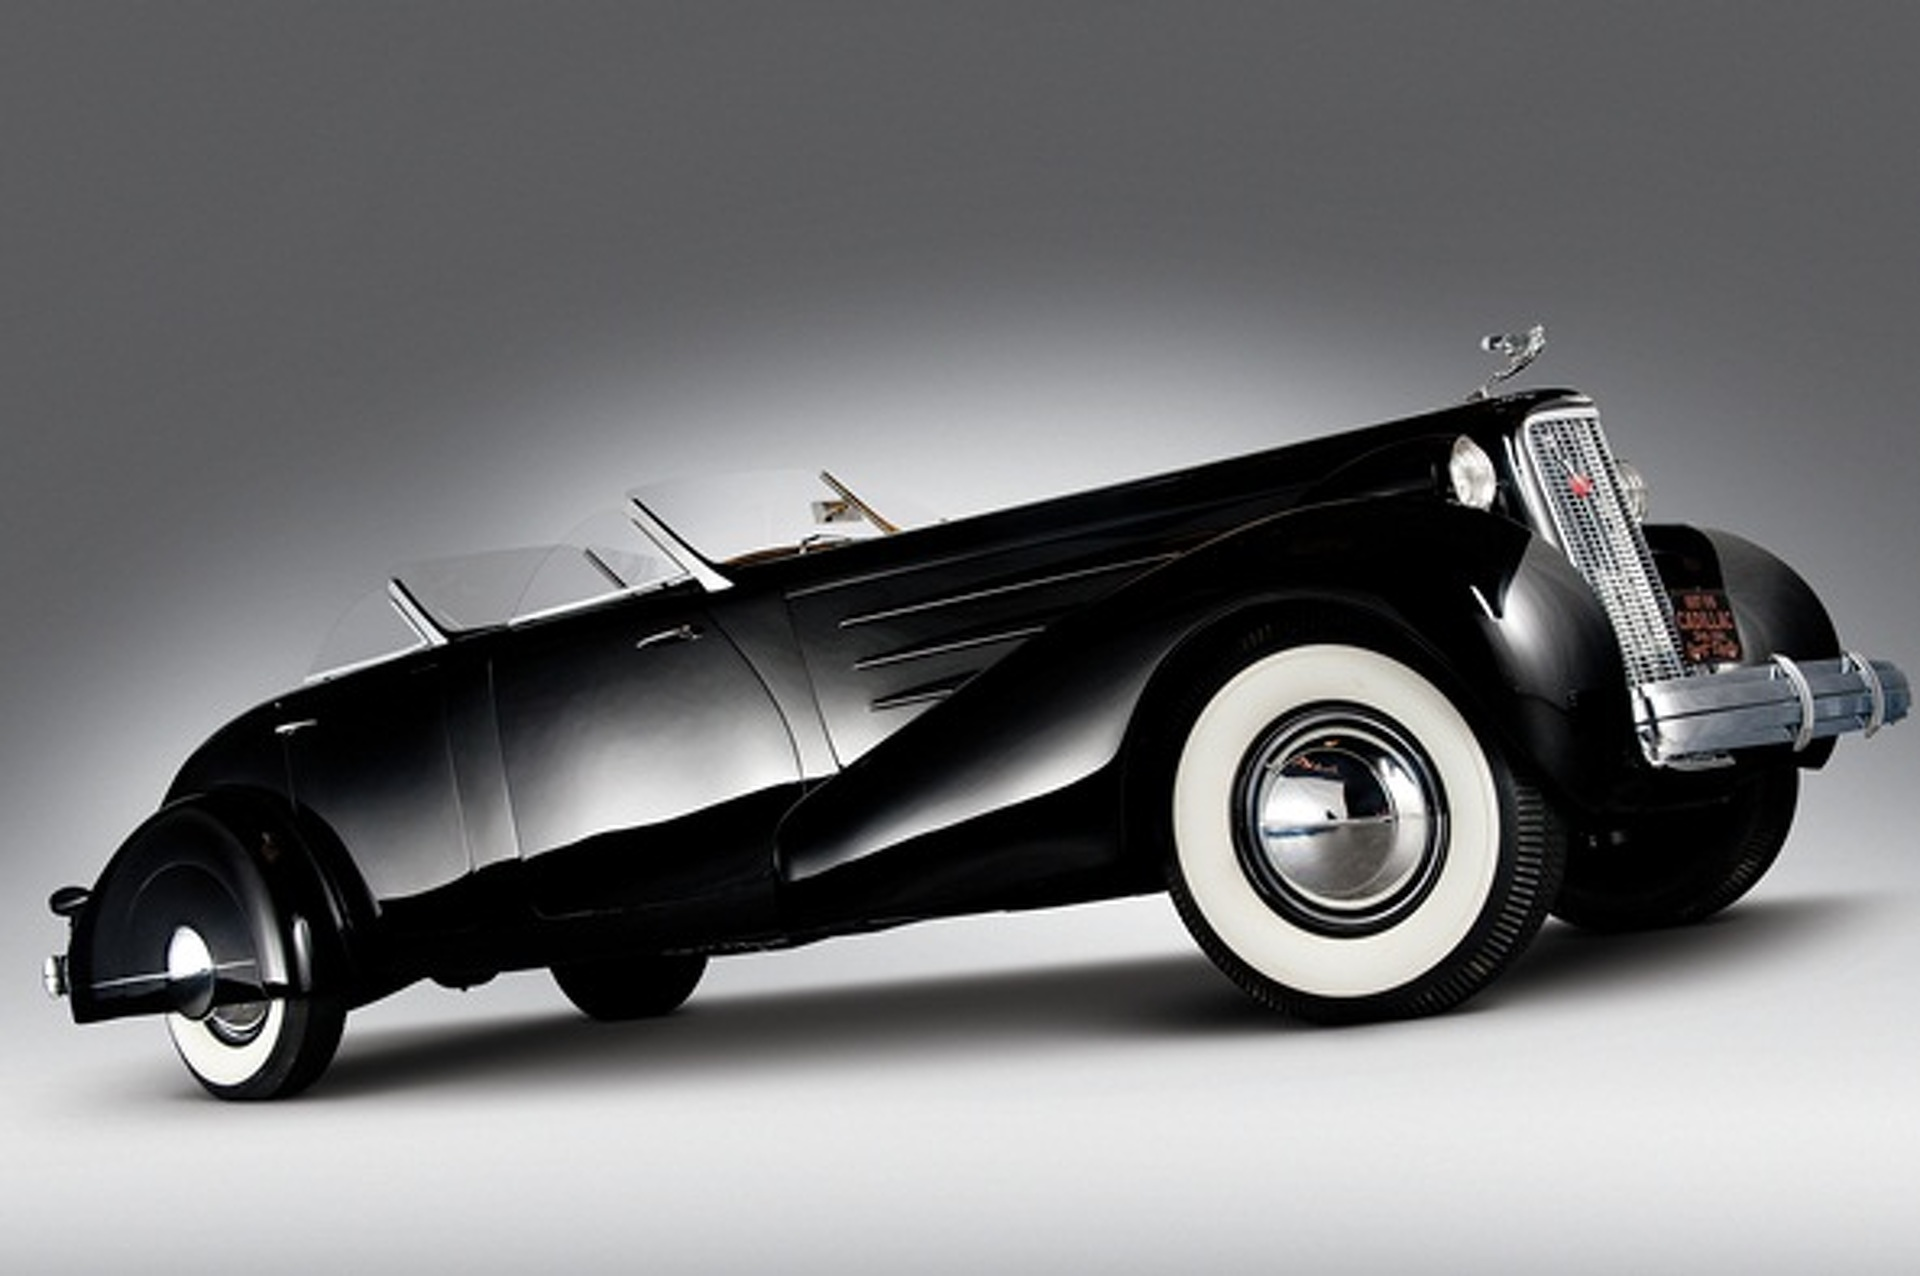 Top 5 Showstopper Cars at 2012 Pebble Beach Concours d'Elegance